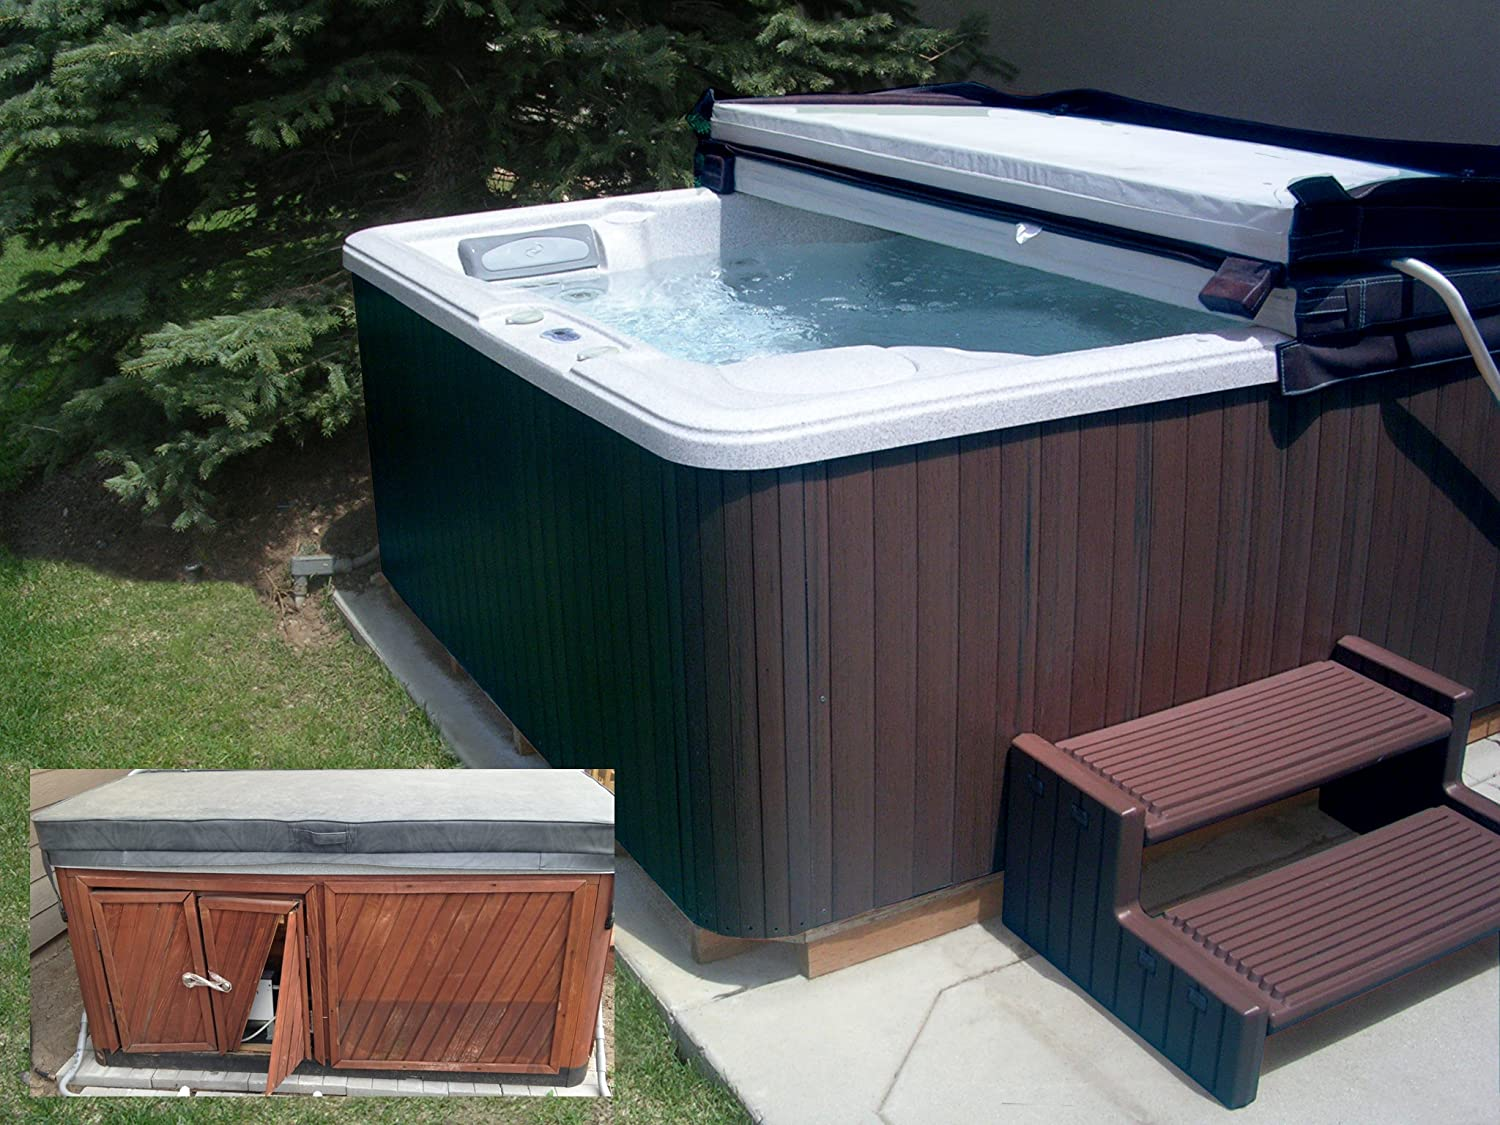 The Best Outdoor Hot Tubs For Your Garden: Reviews & Buying Guide 12